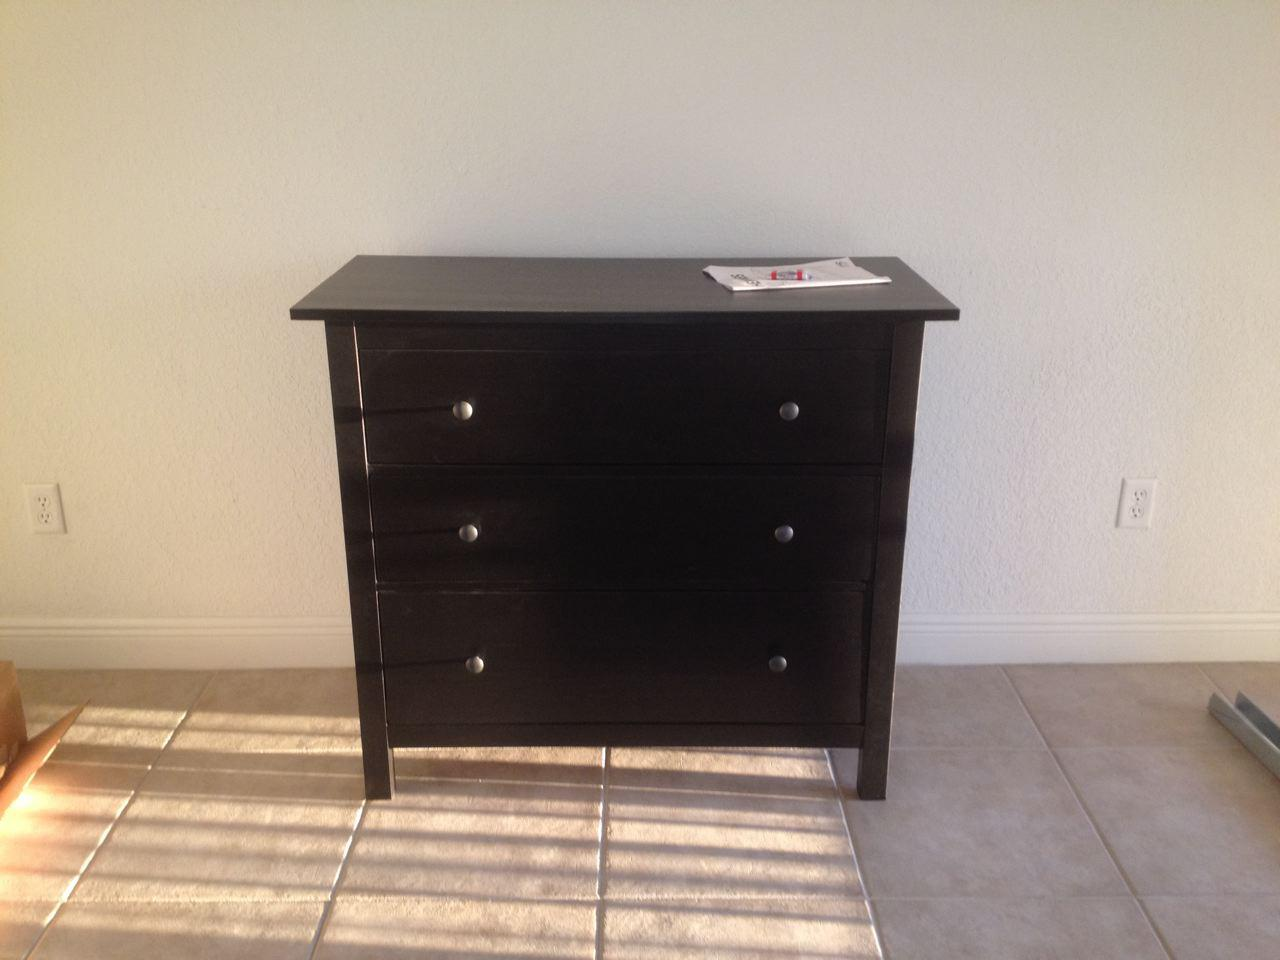 Ikea Hemnes Dresser Review Home Furniture Design